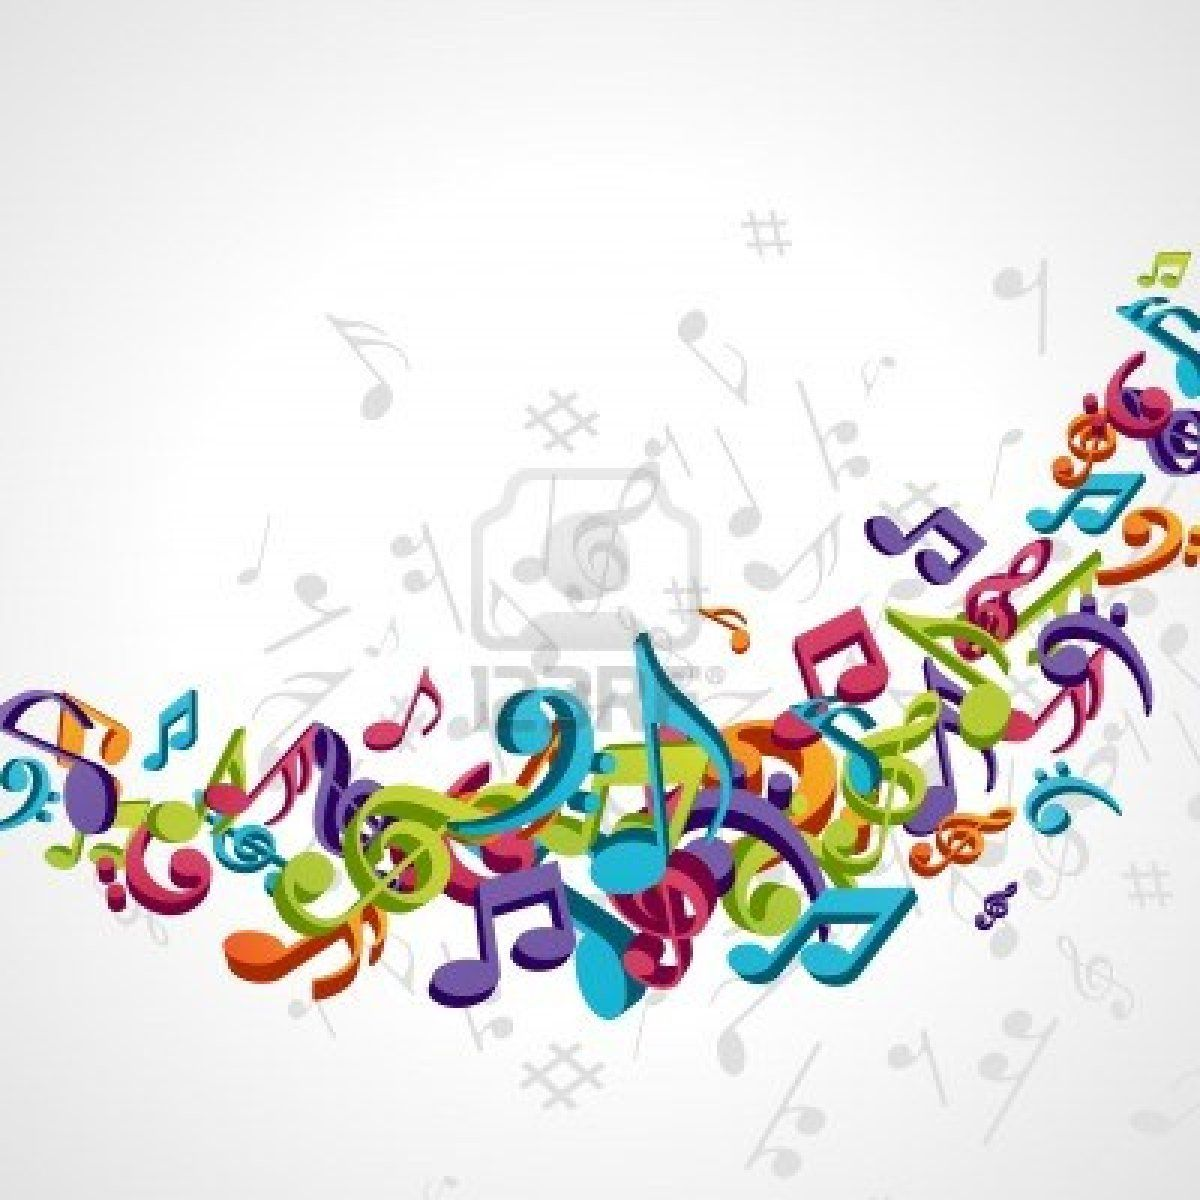 Musical notes staff background on white vector by tassel78 image - Colorful Music Background With Fly Notes Stock Photo 10578357